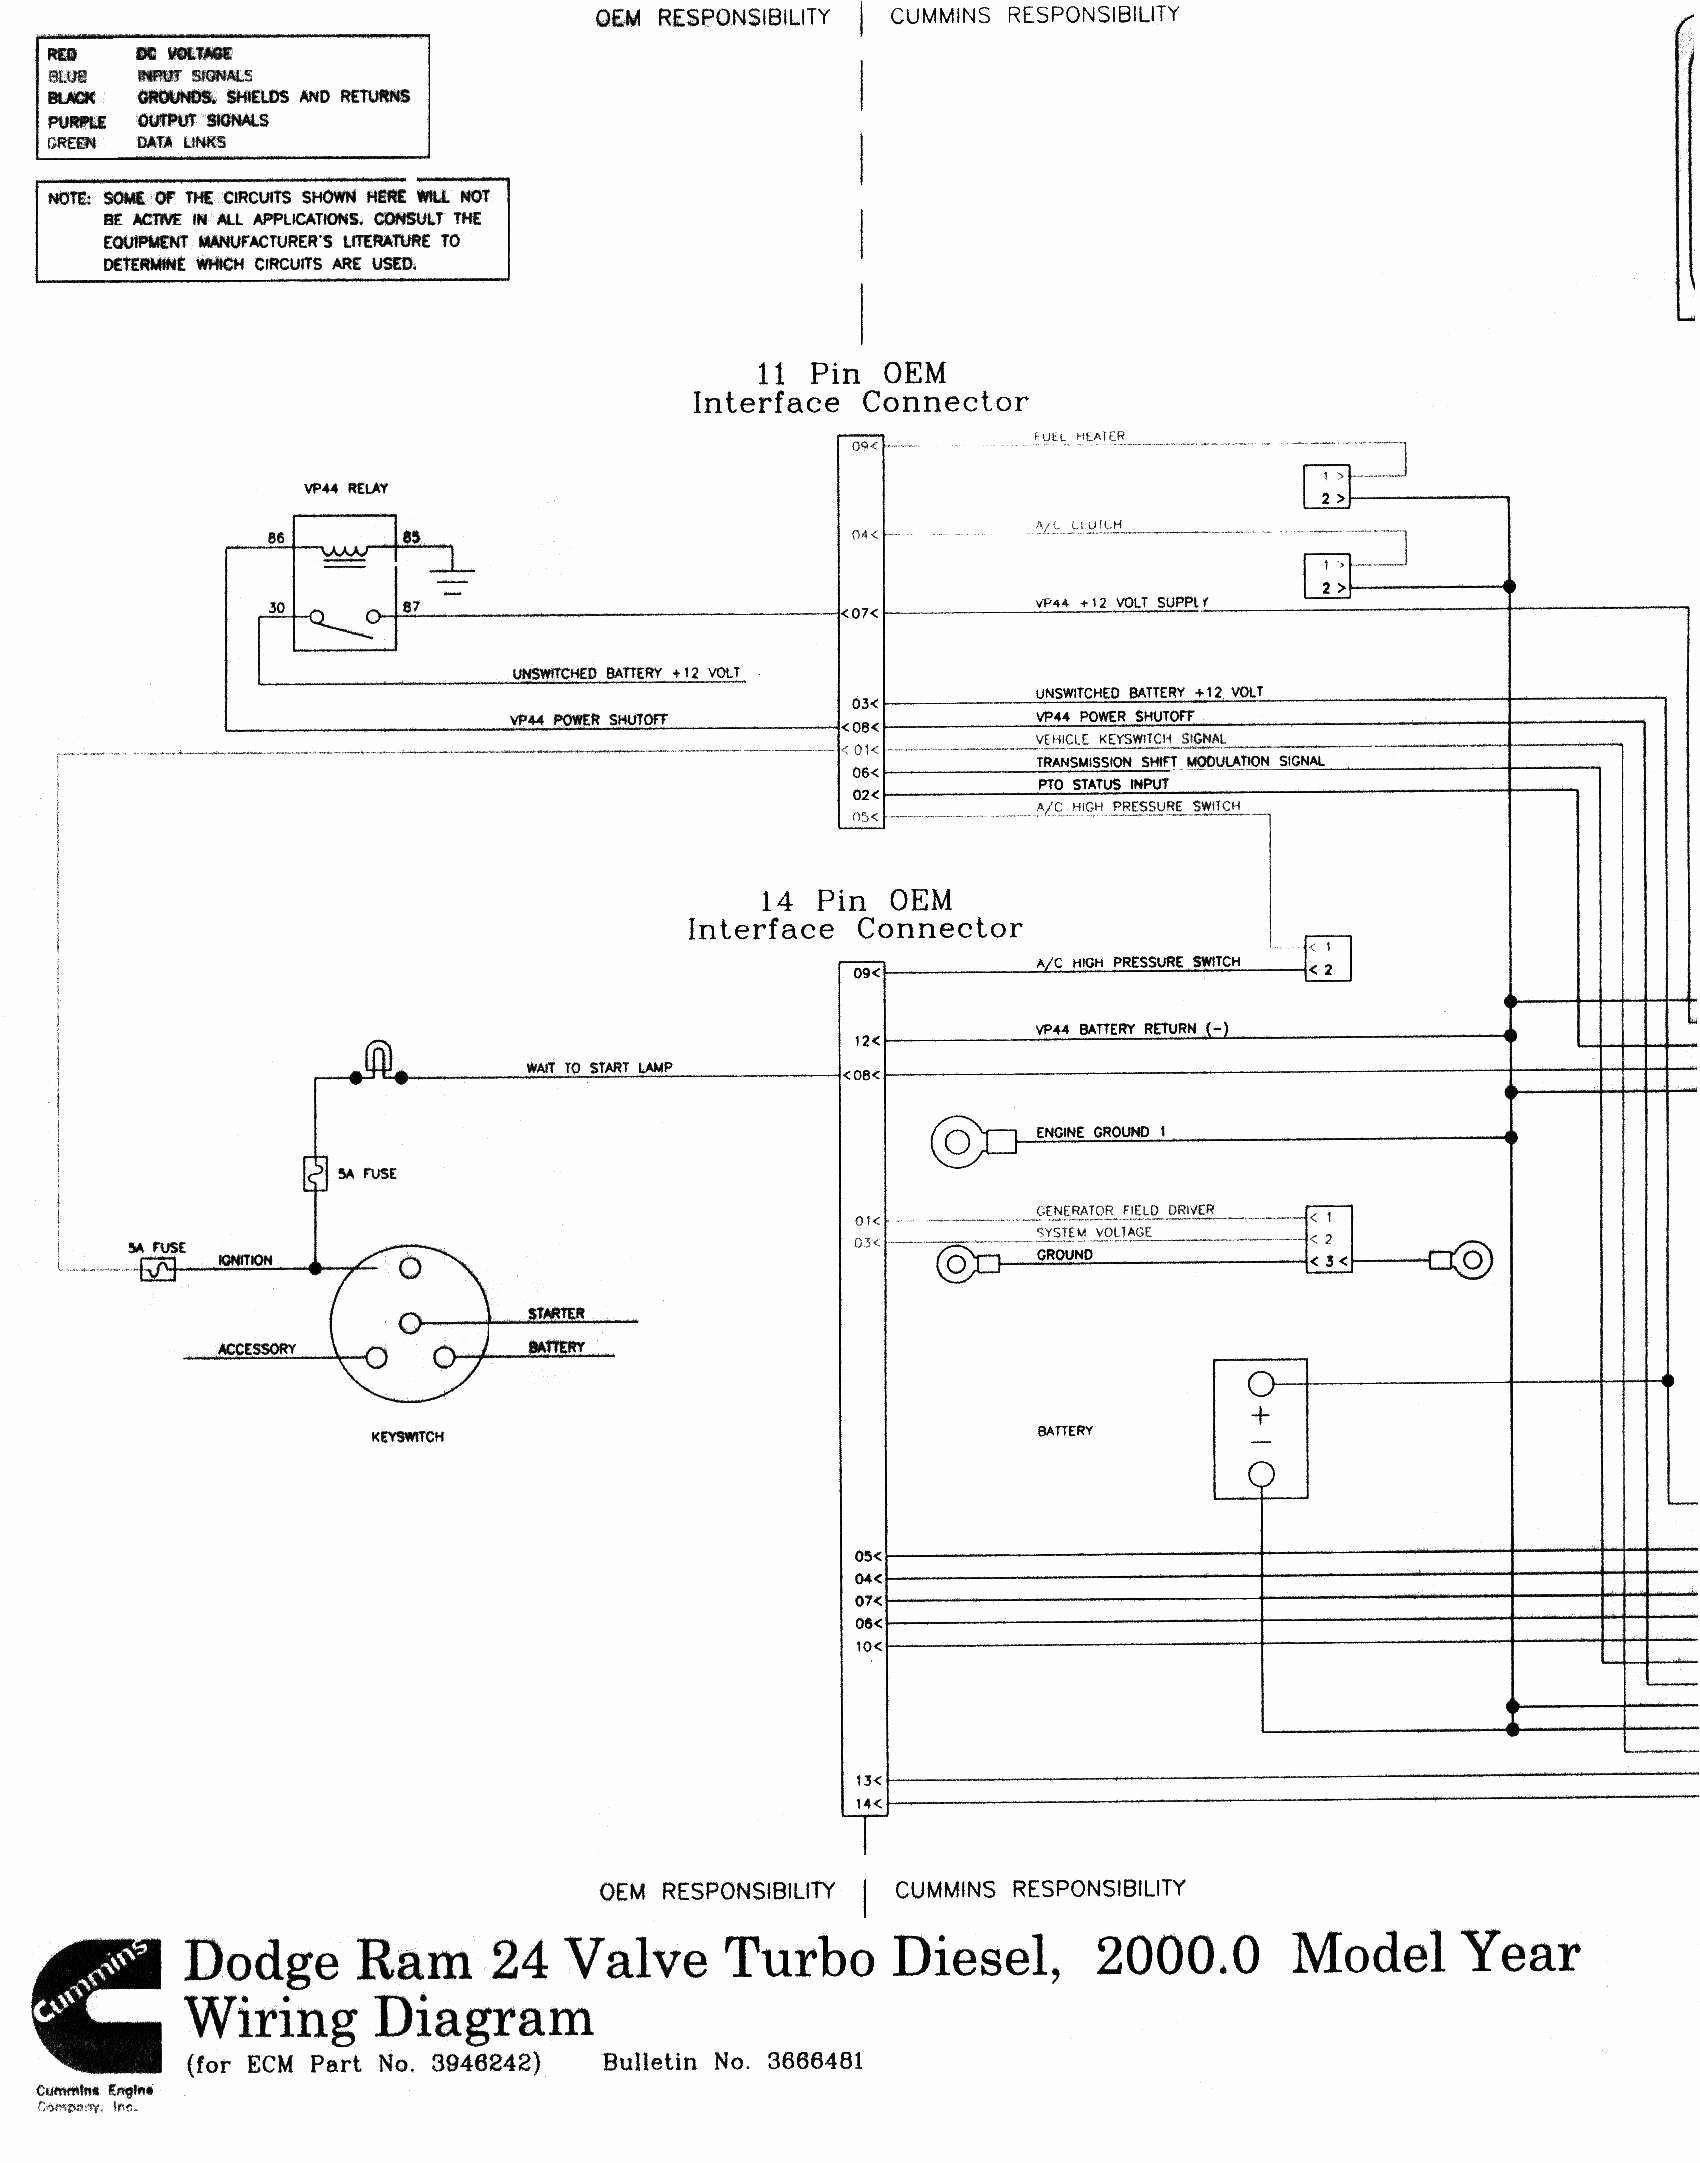 New Wiring Diagram For 2014 Dodge Ram 1500 Diagram Diagramsample Diagramtemplate Wiringdiagram Diagramchart Worksheet W Dodge Trucks Ram Dodge Dodge Ram